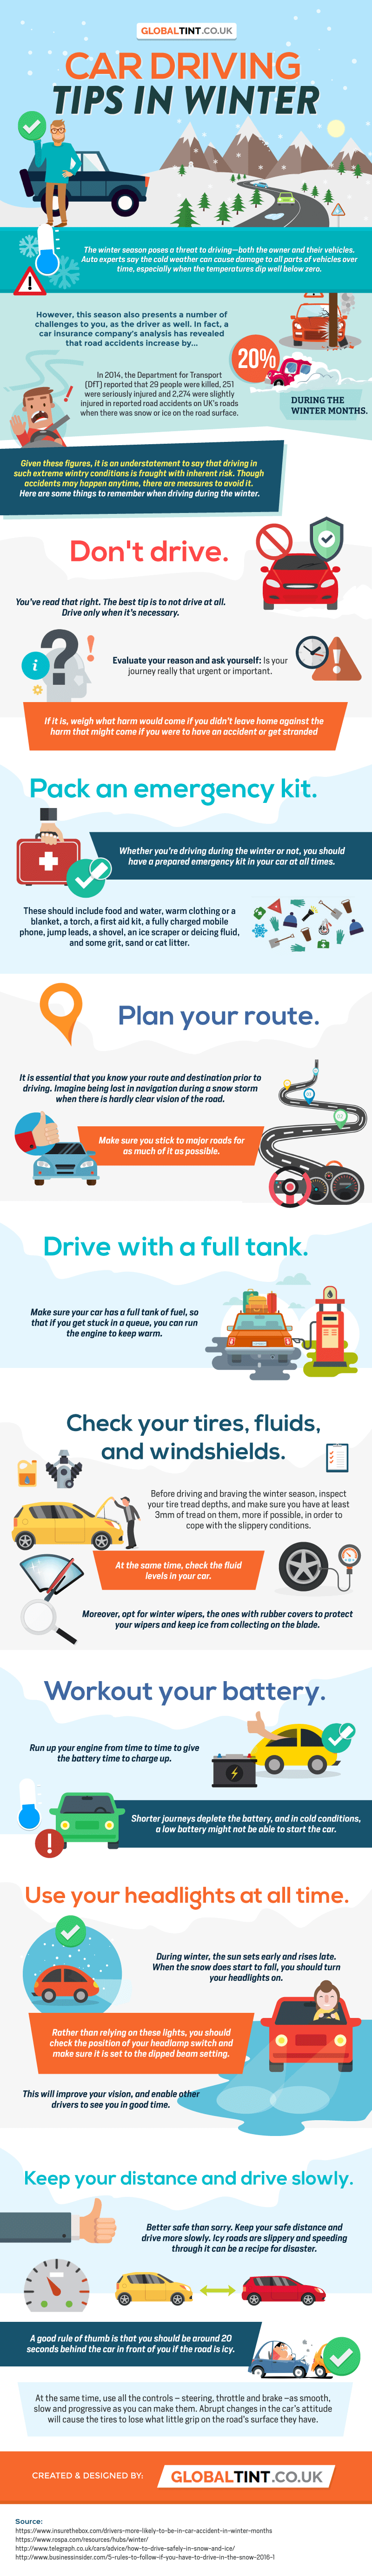 Car-Driving-Tips-in-Winter